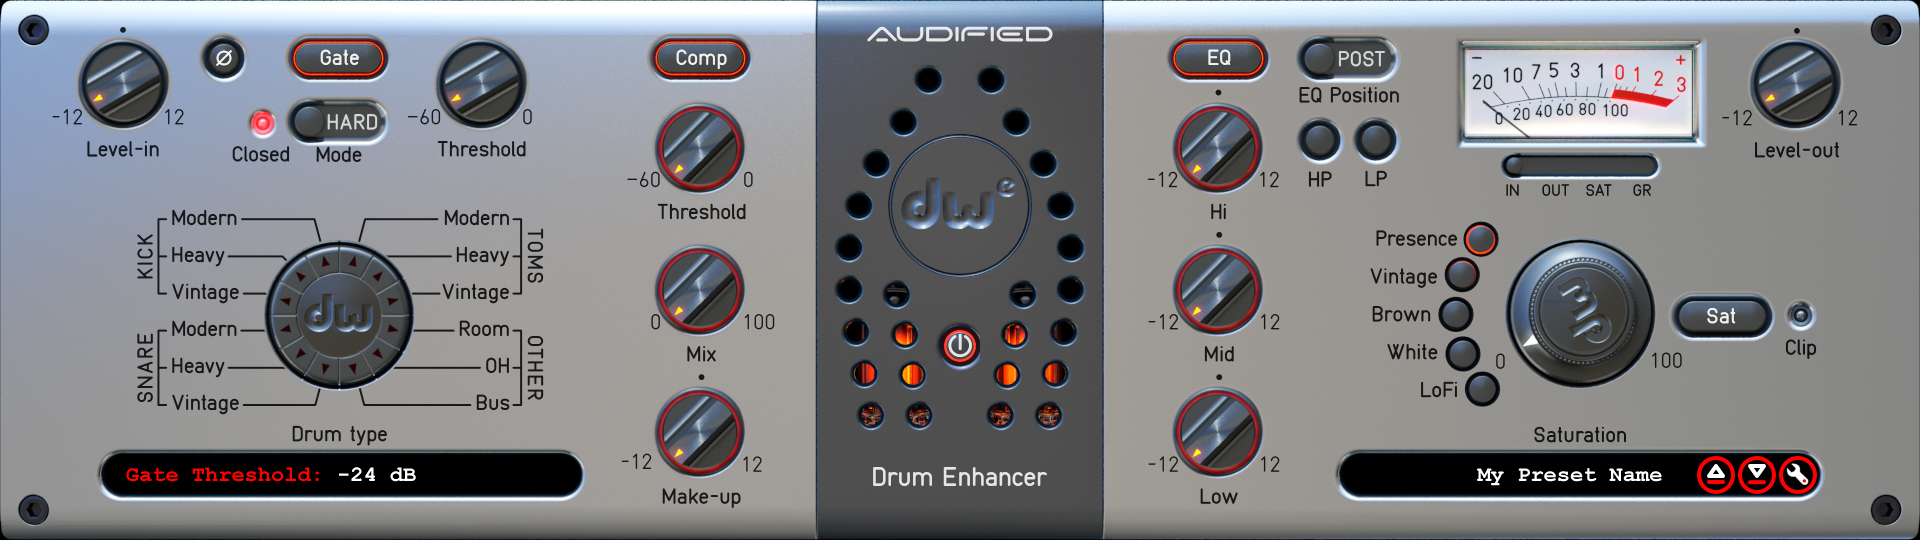 Review of DW Drum Enhancer plugin by Audified